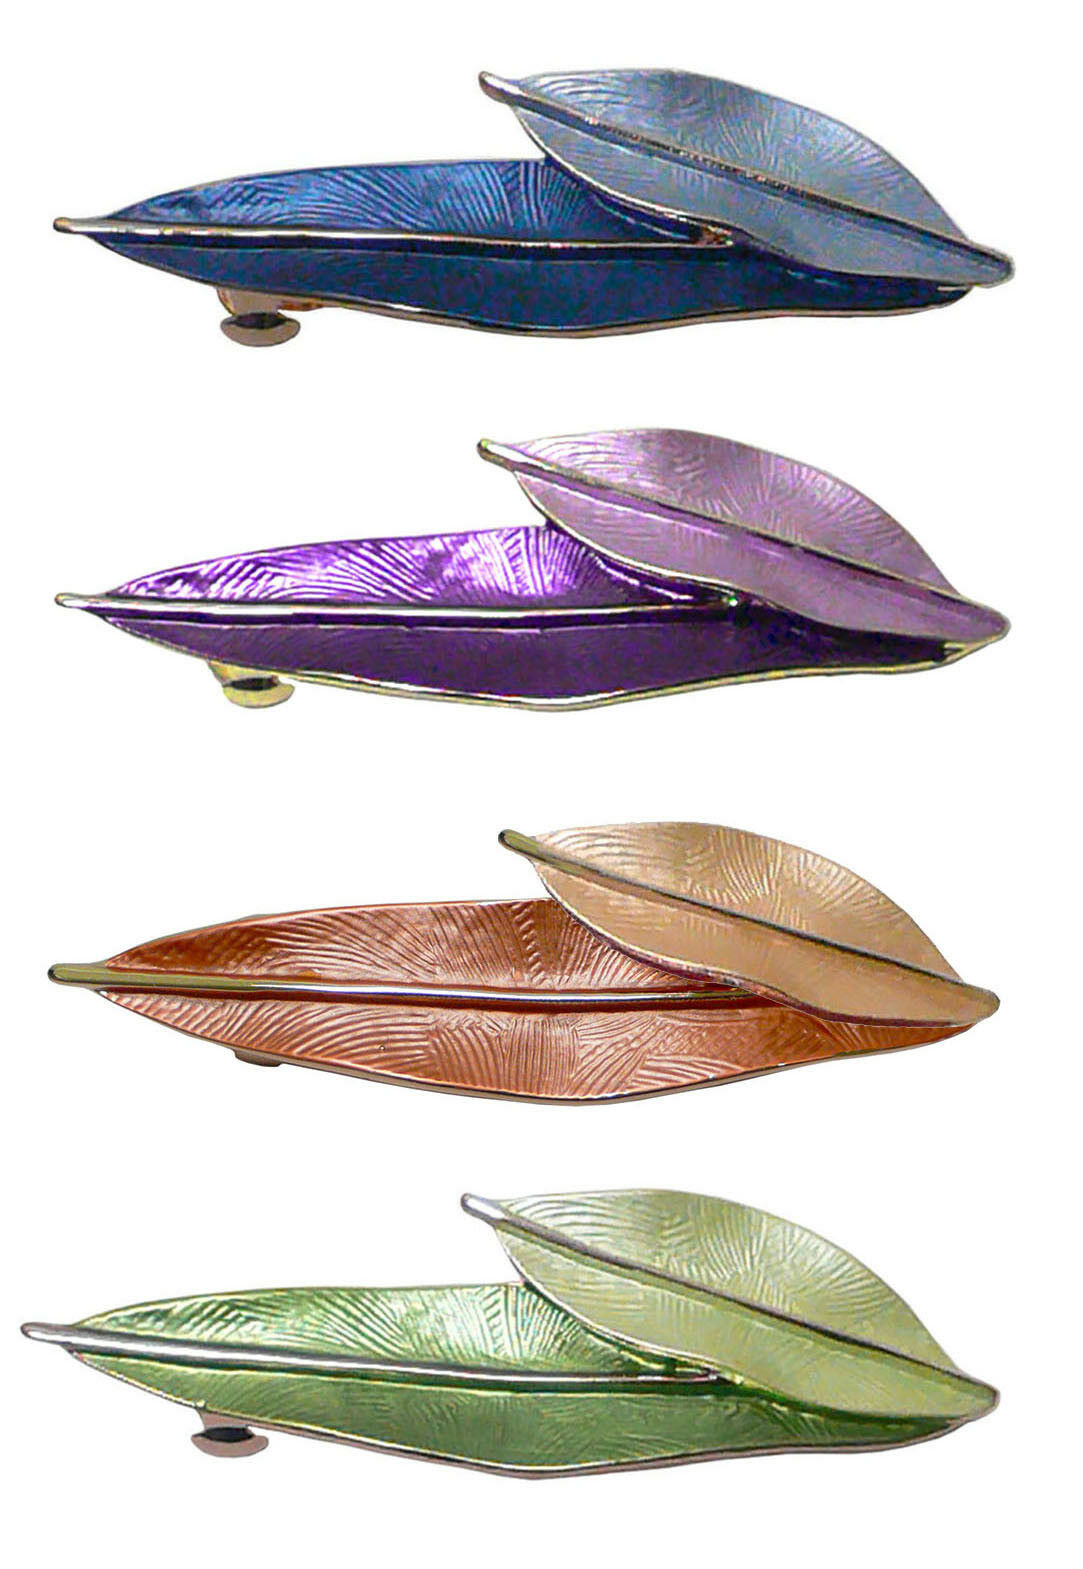 Bella Barrette Hairclip Design of Leaves in Contrasting Shad